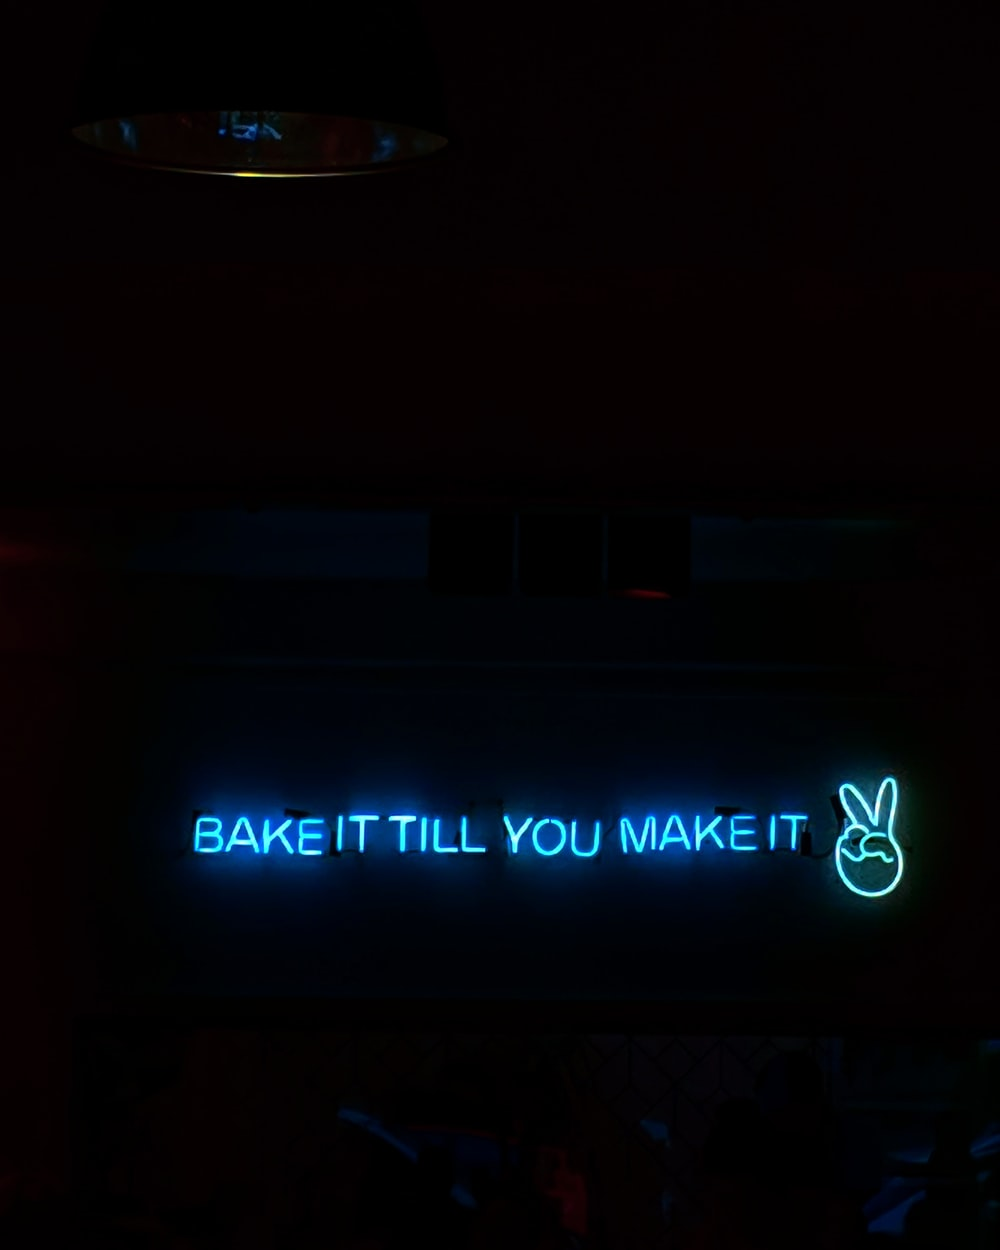 Bakt it till you make it neon signage light